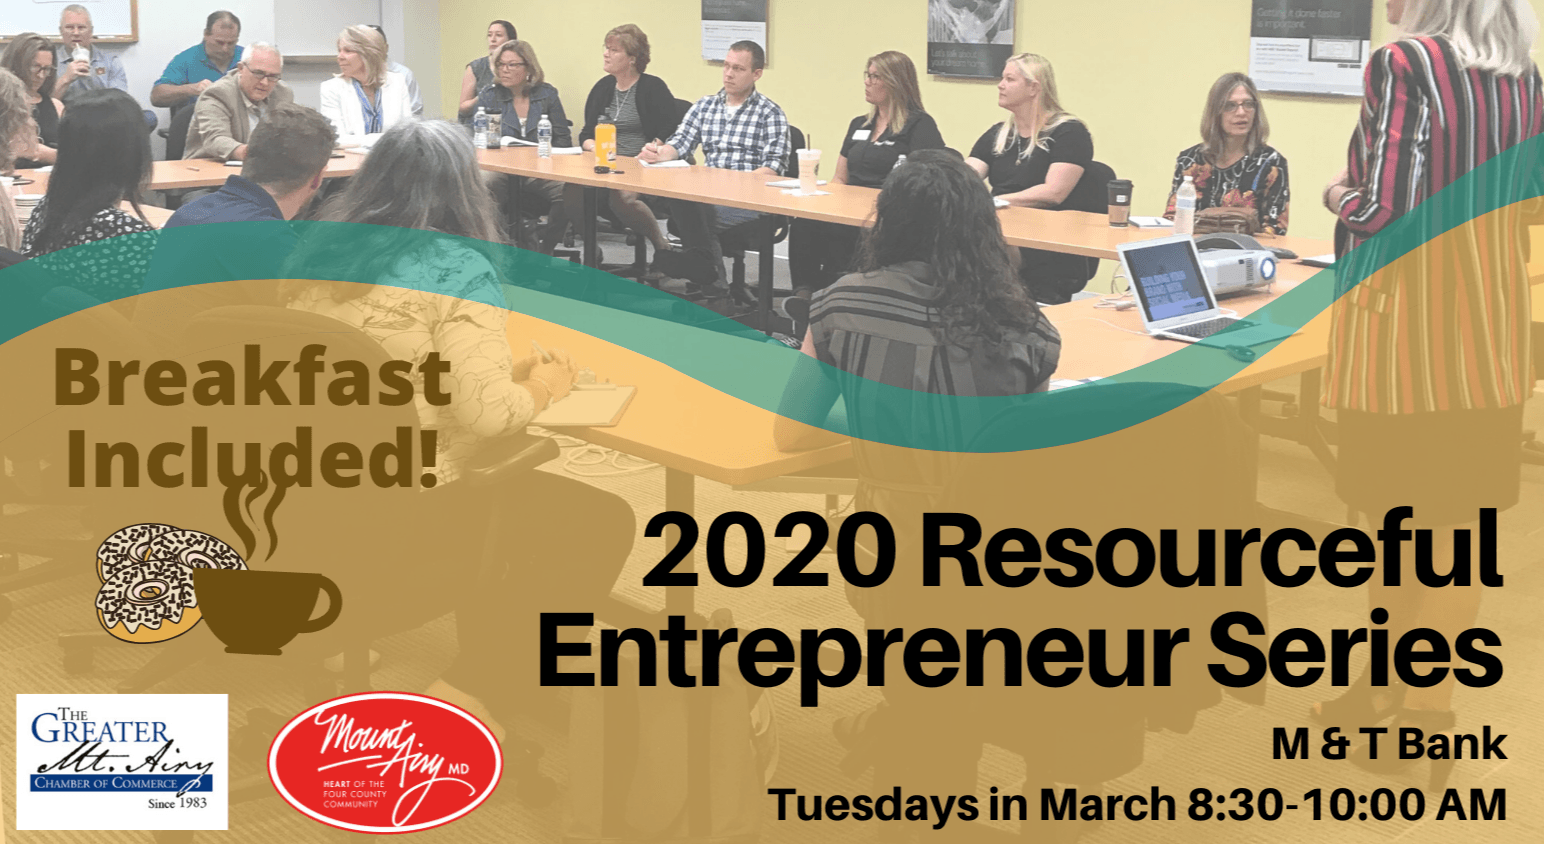 2020 Resourceful Entrepreneur Series